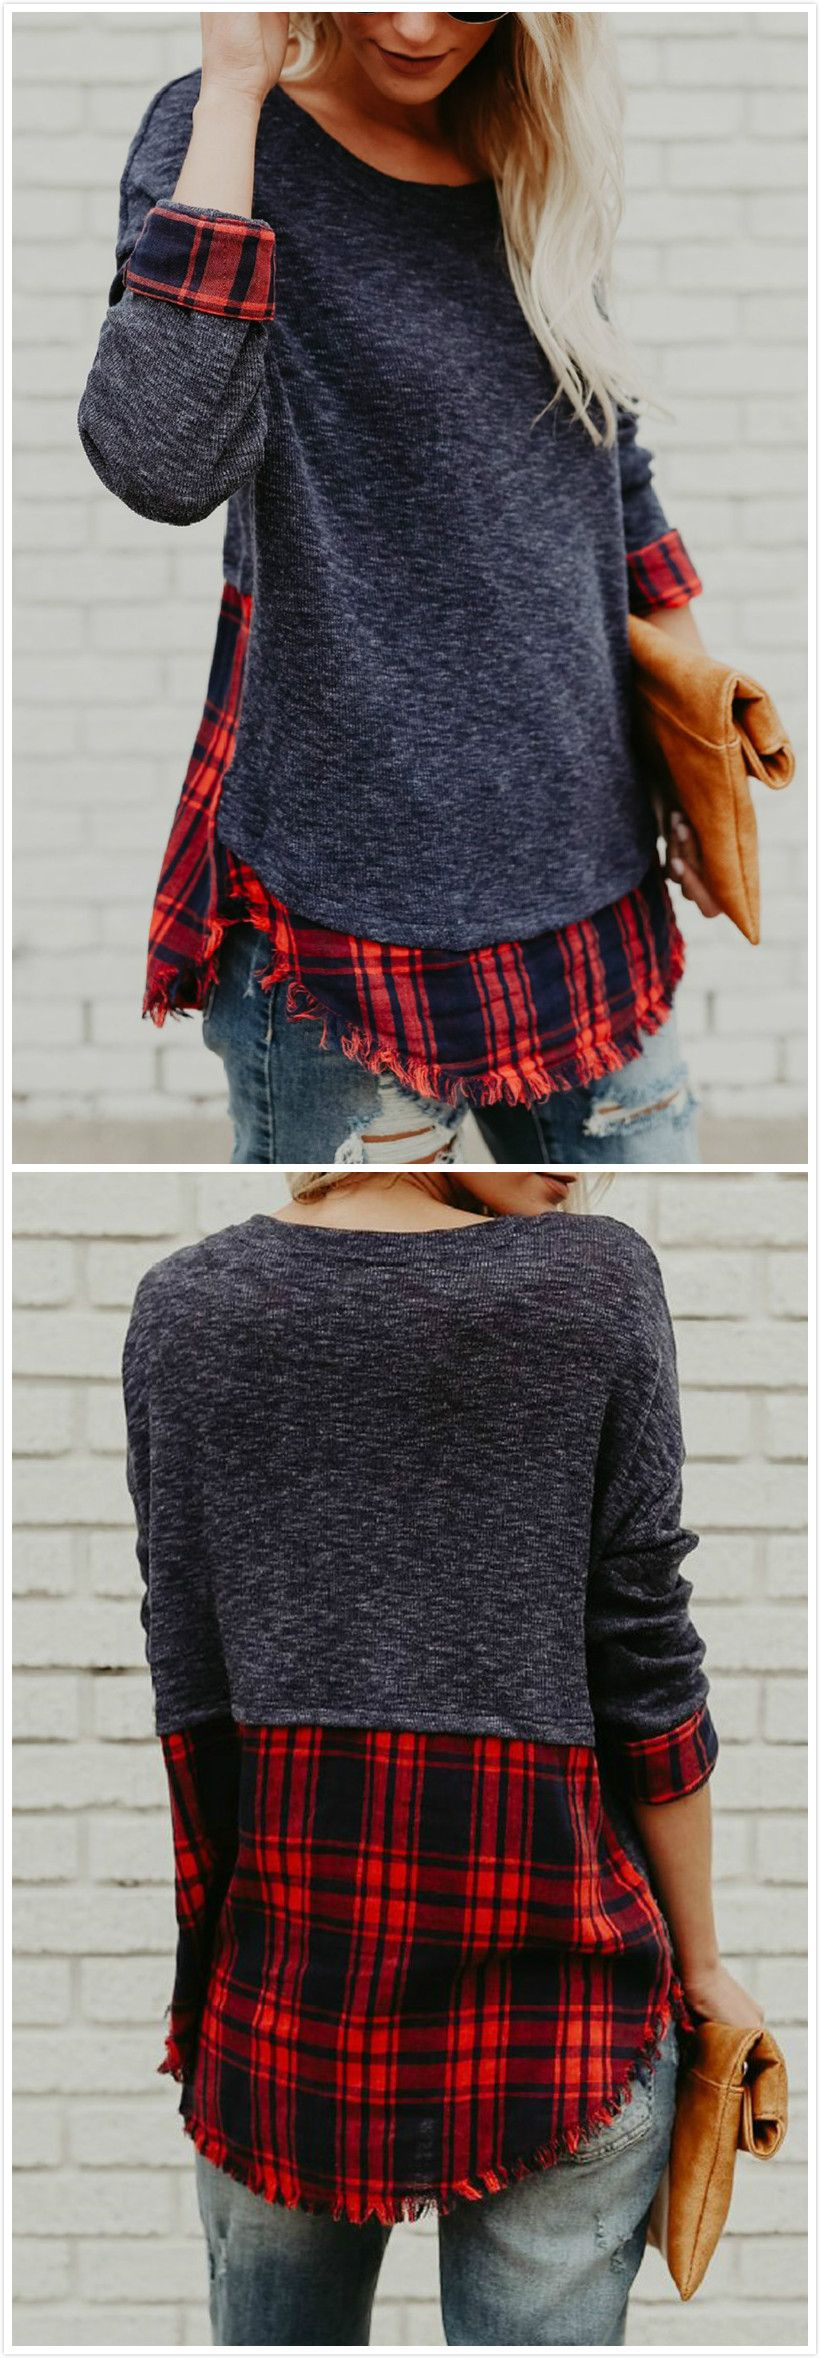 Flannel t shirts  Round Neck Long Sleeve Plaid Panel Knit Tee Shirt  Repurpose